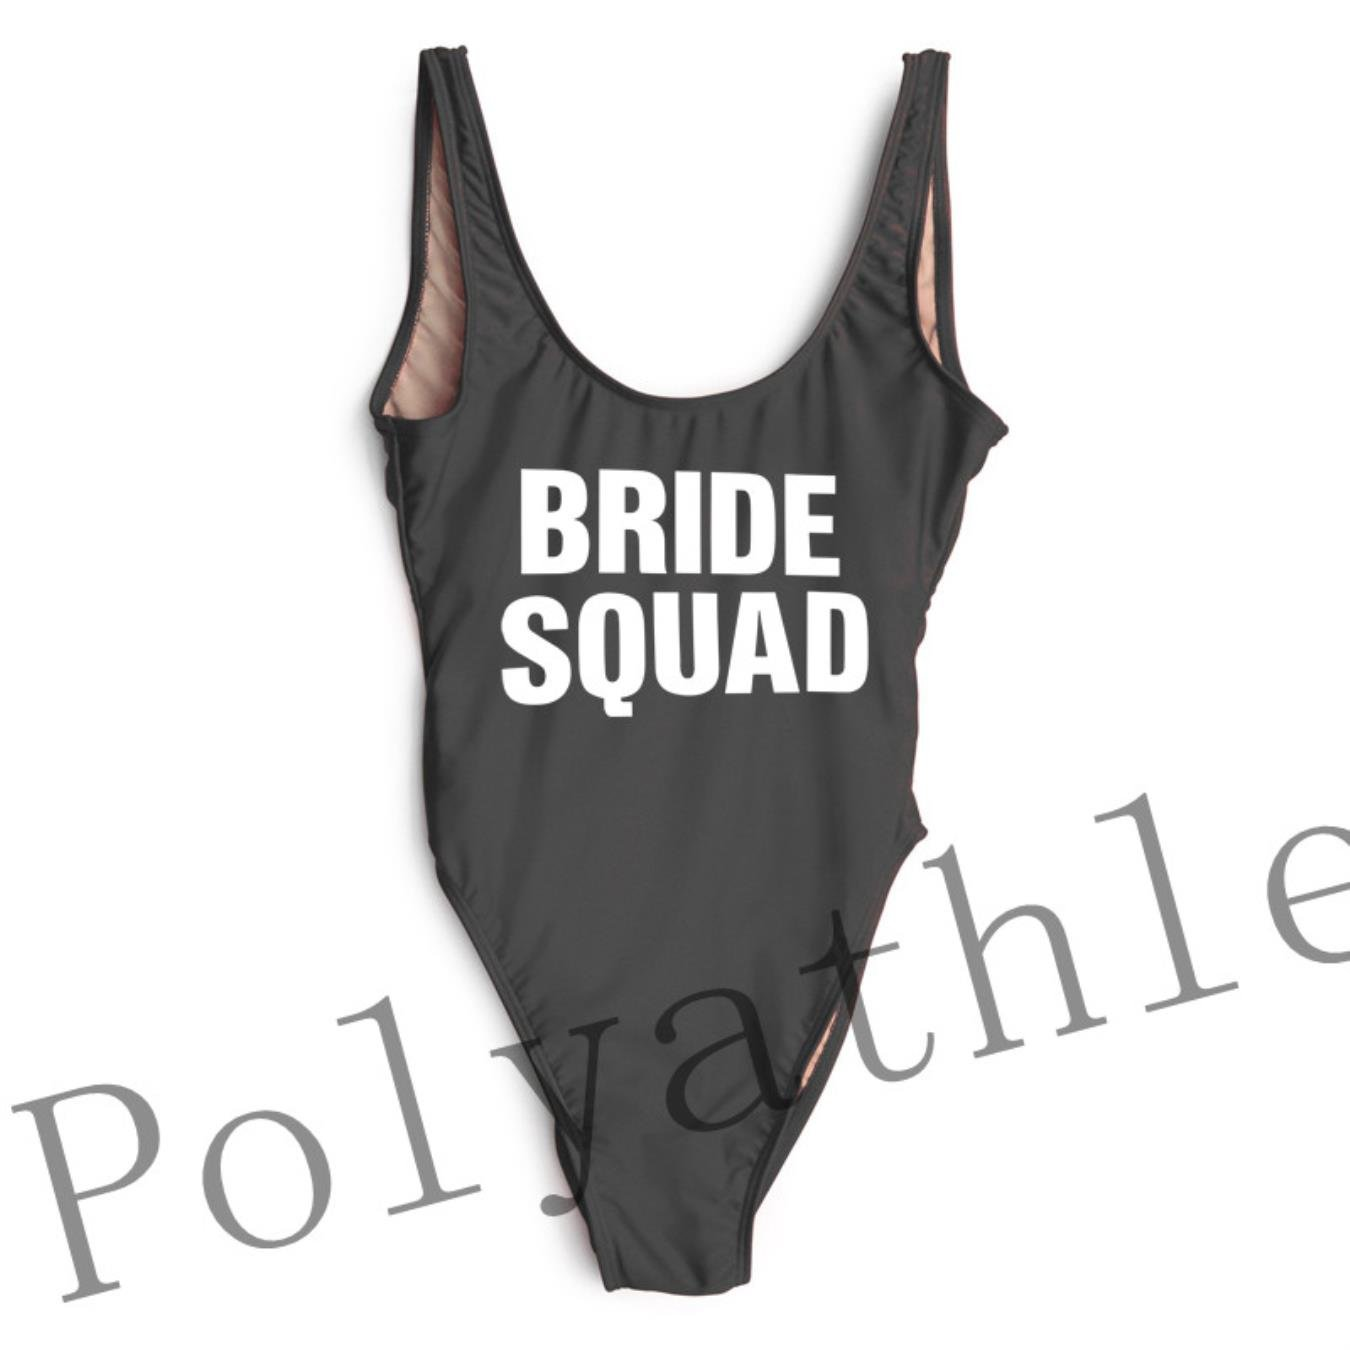 NIJKDY One Piece Swimsuit Bride Squad High Cut Bathing Suit at Amazon Women s  Clothing store  0edf03c4bd82